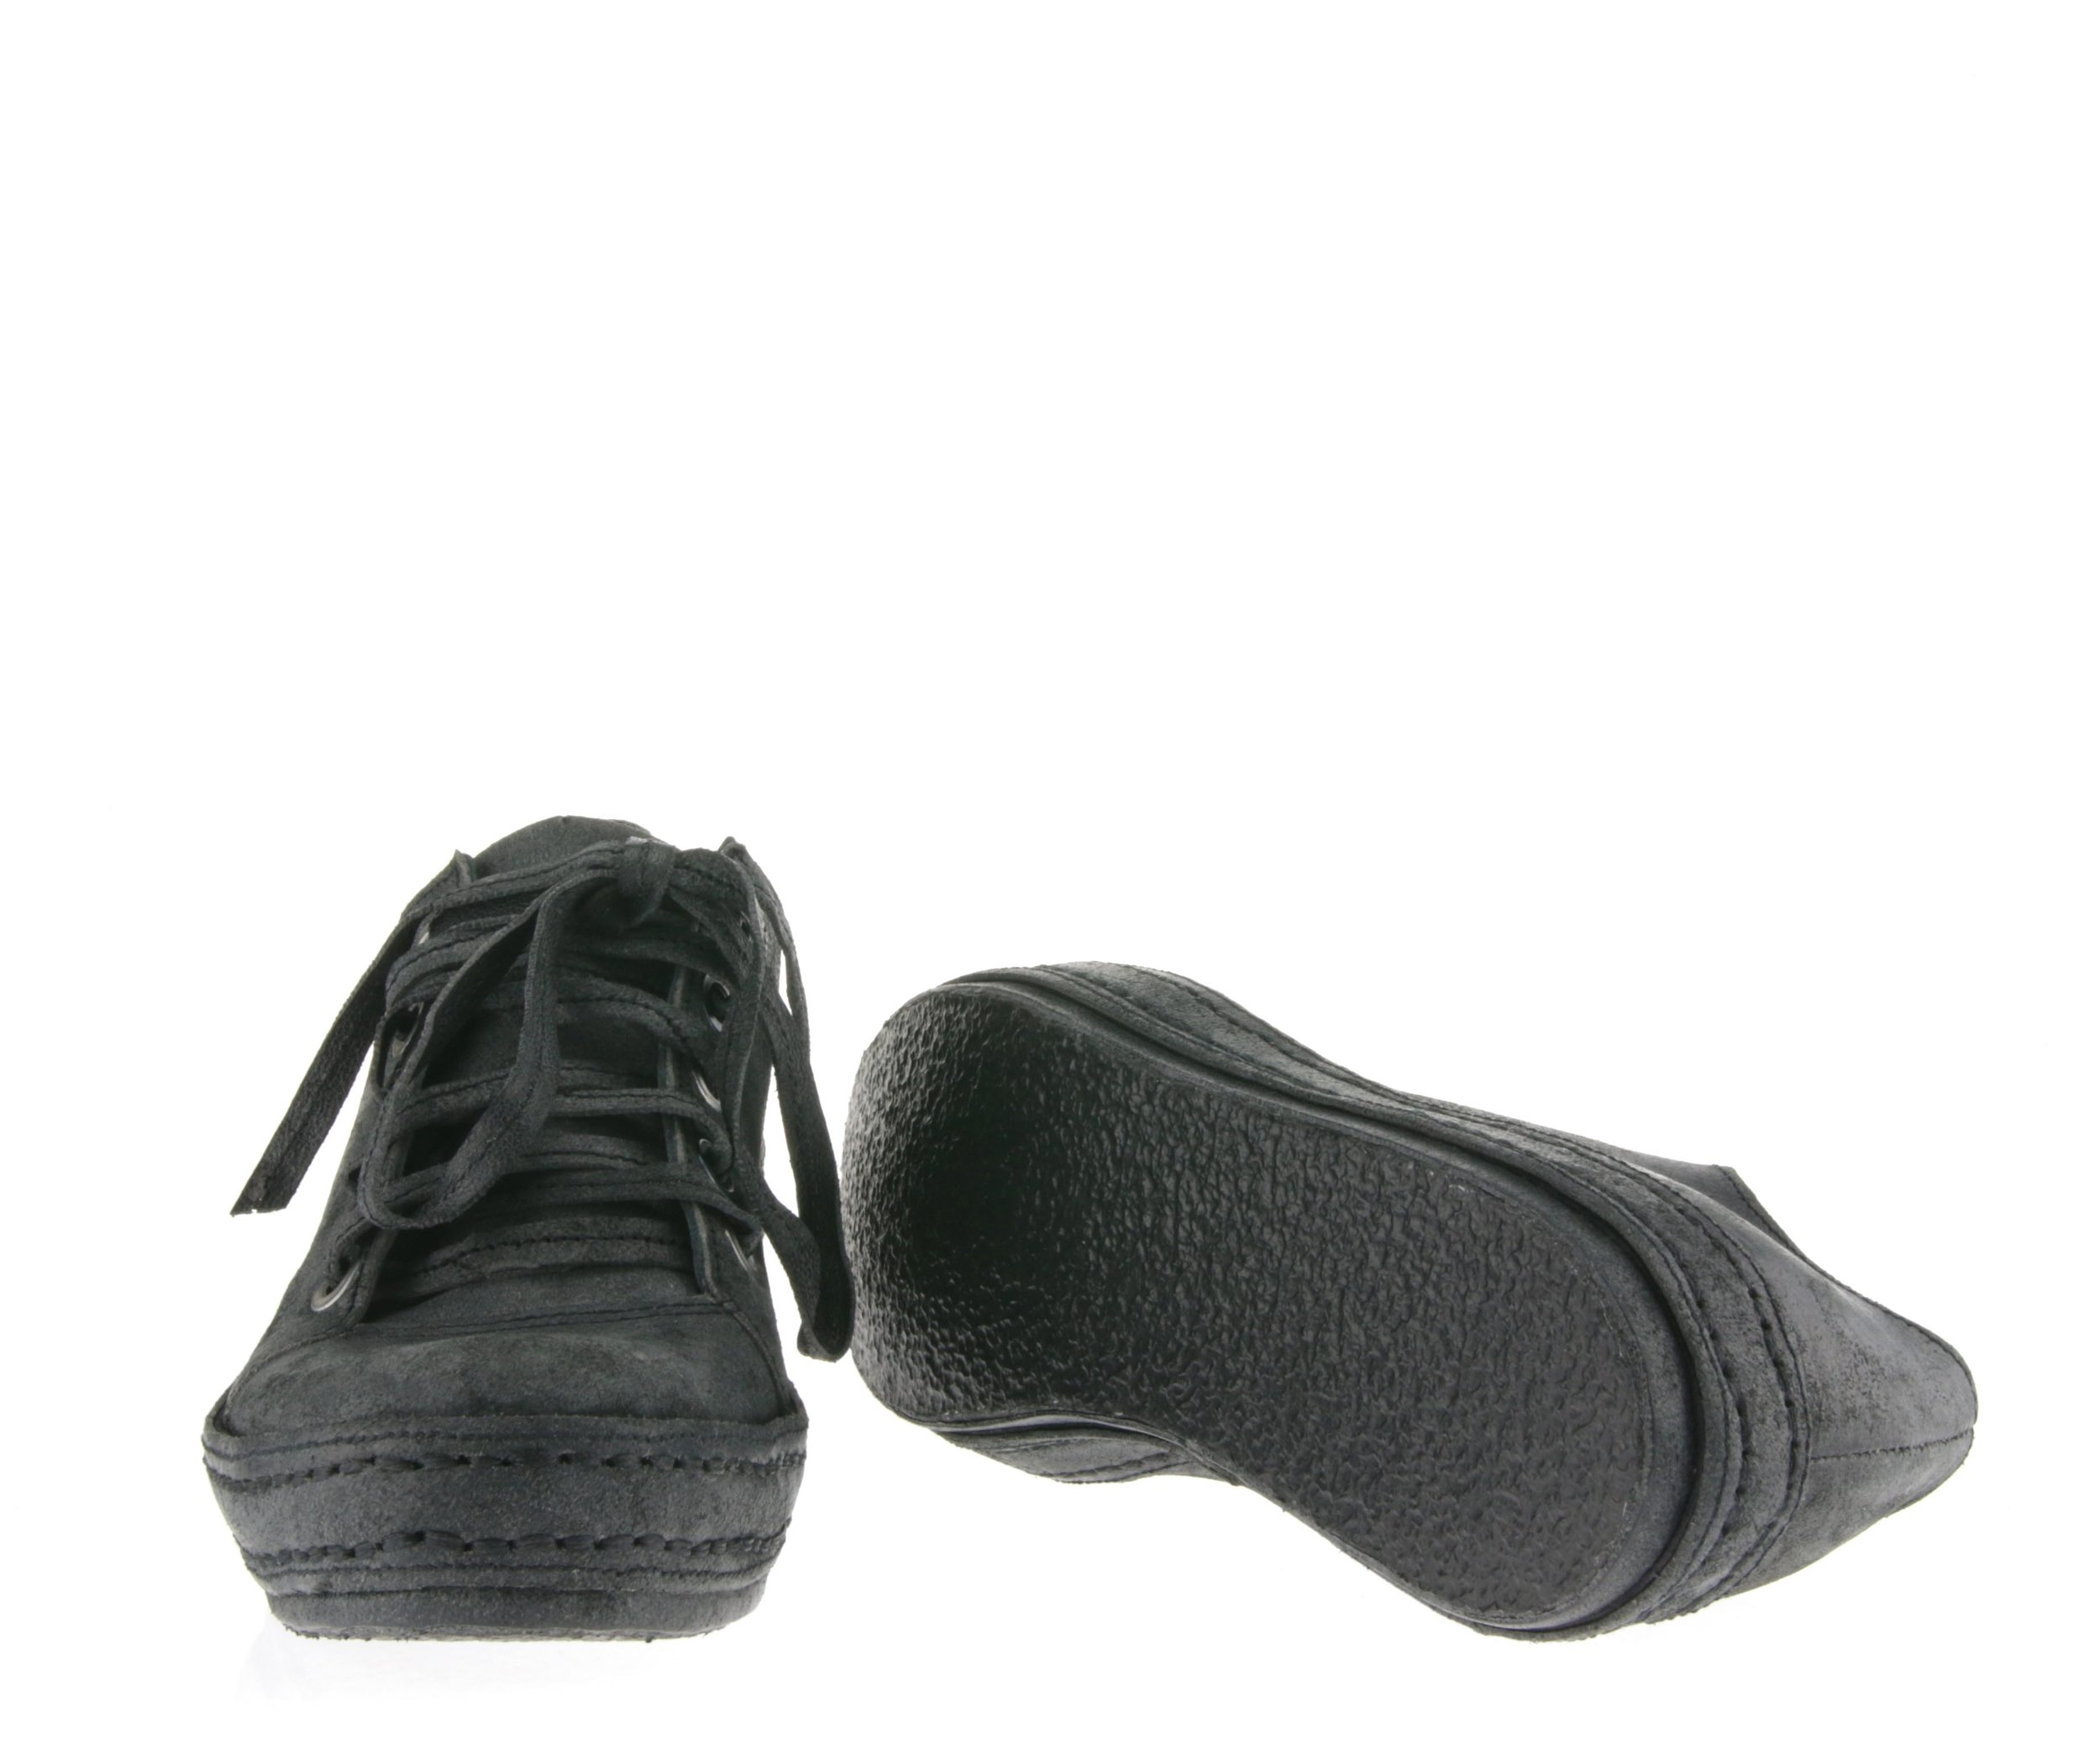 5Holes double front sole.JPG